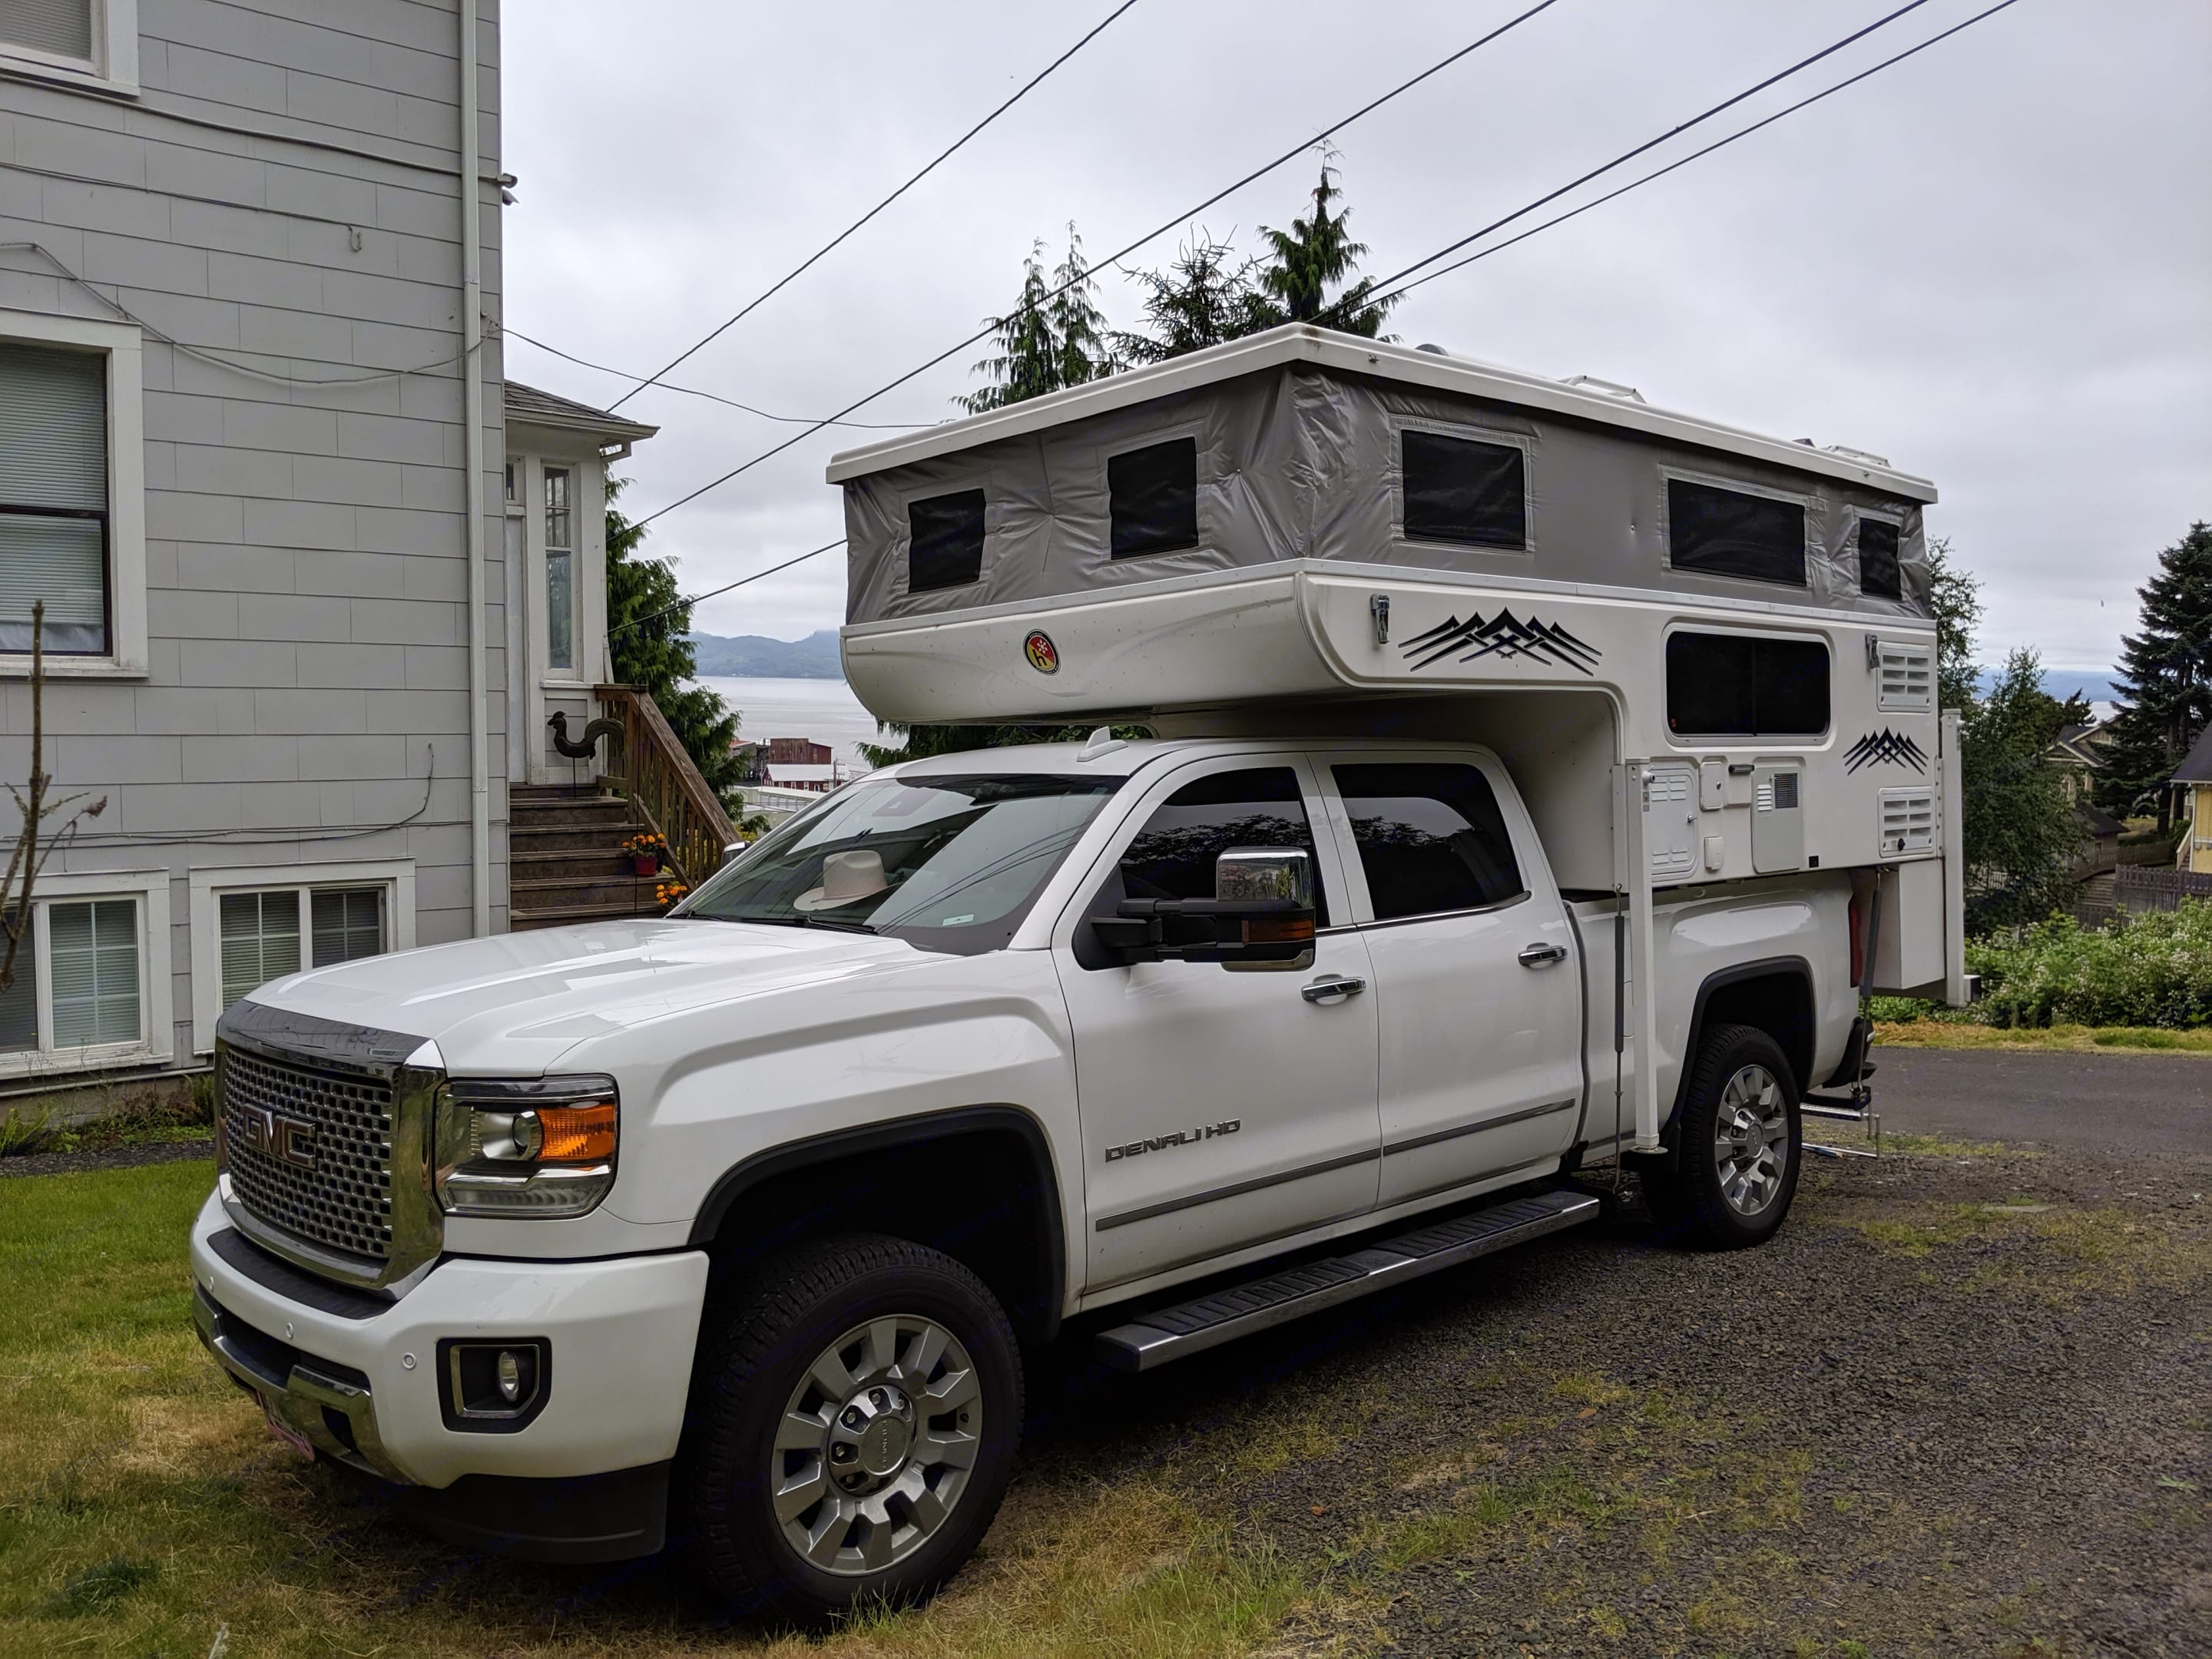 The whole rig with the top up! . Hallmark Guanella Lx 2018